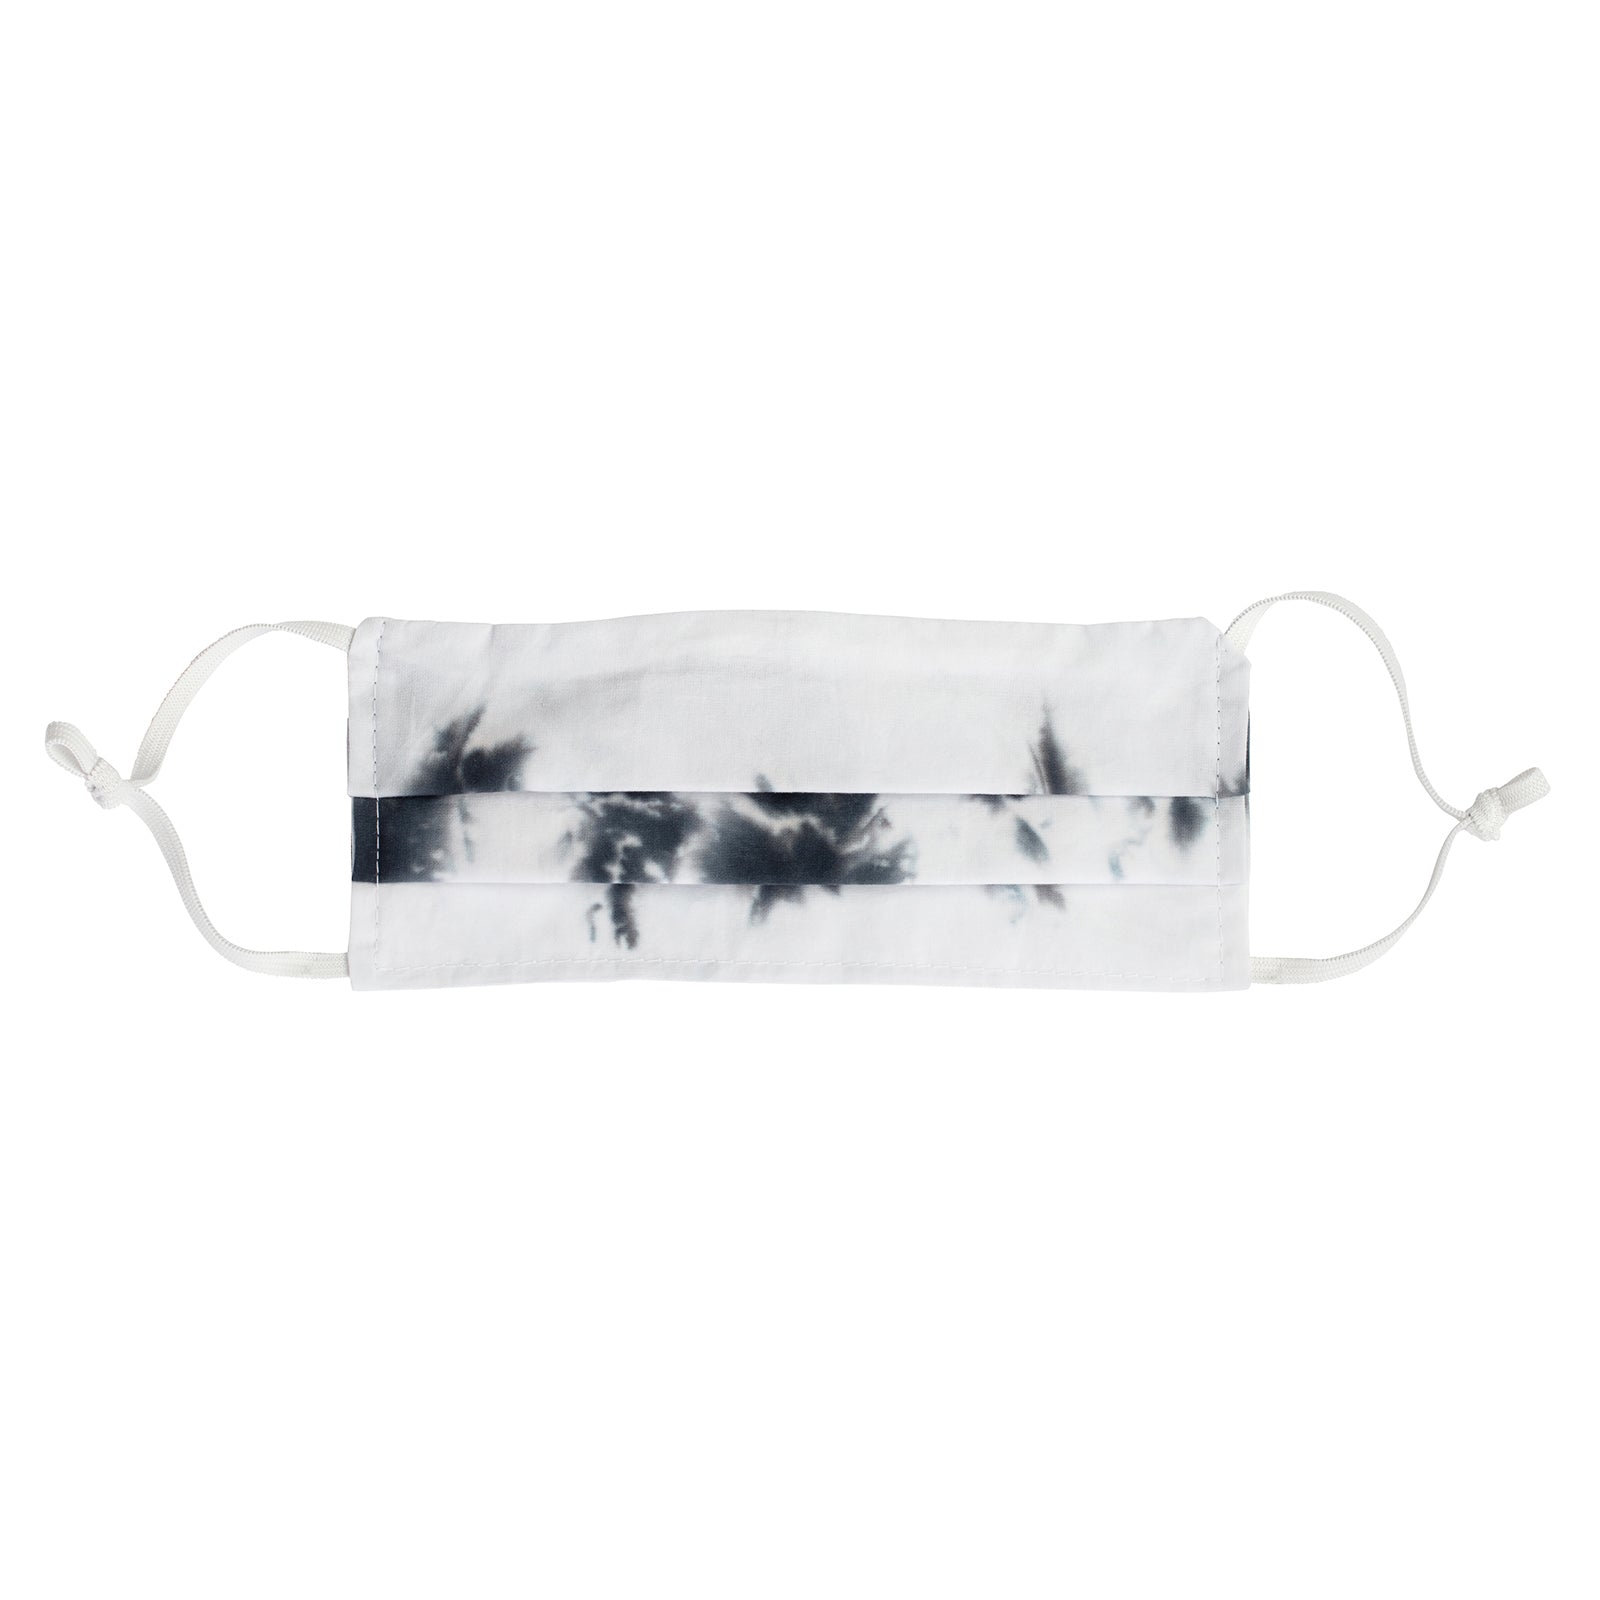 Fraction LA Tie Dye Face Mask - Black & White - Accessories - Broken English Jewelry